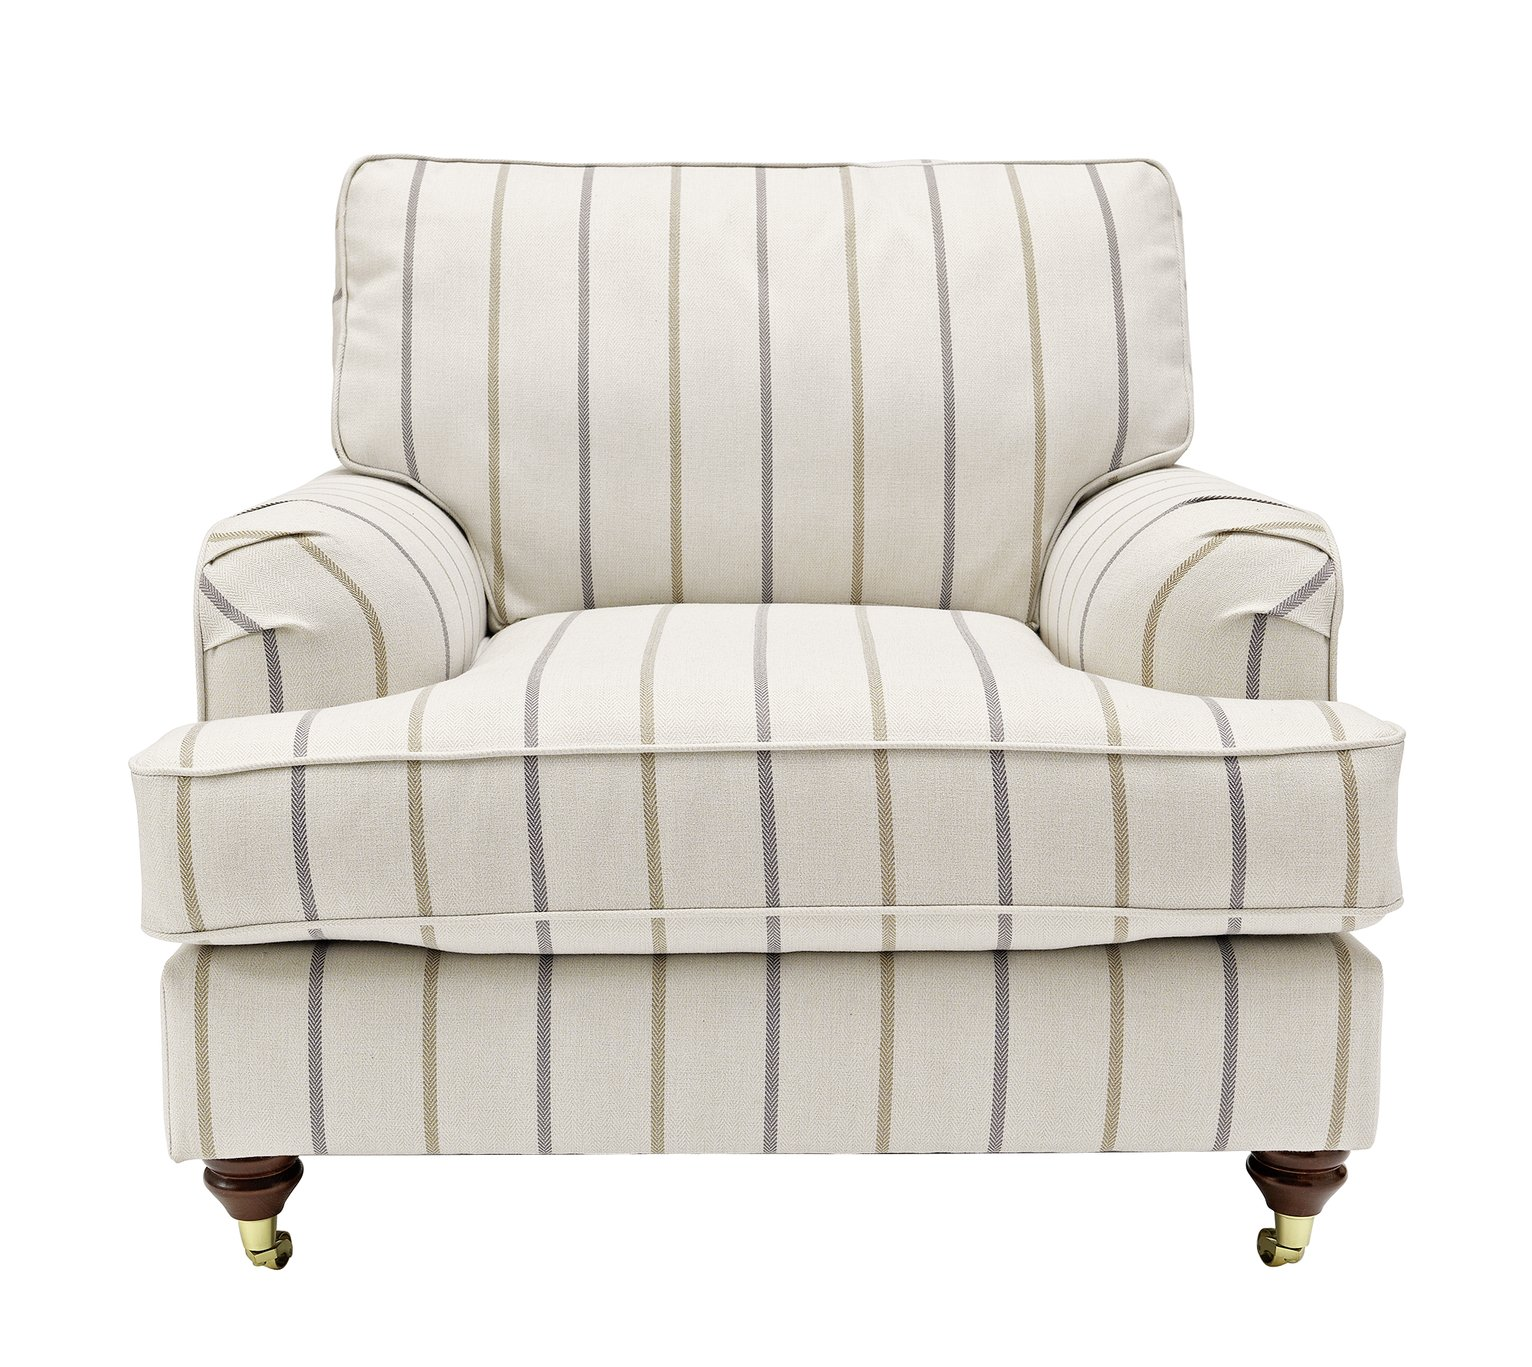 Argos Home Abberton Tweed Fabric Armchair - Natural Stripe